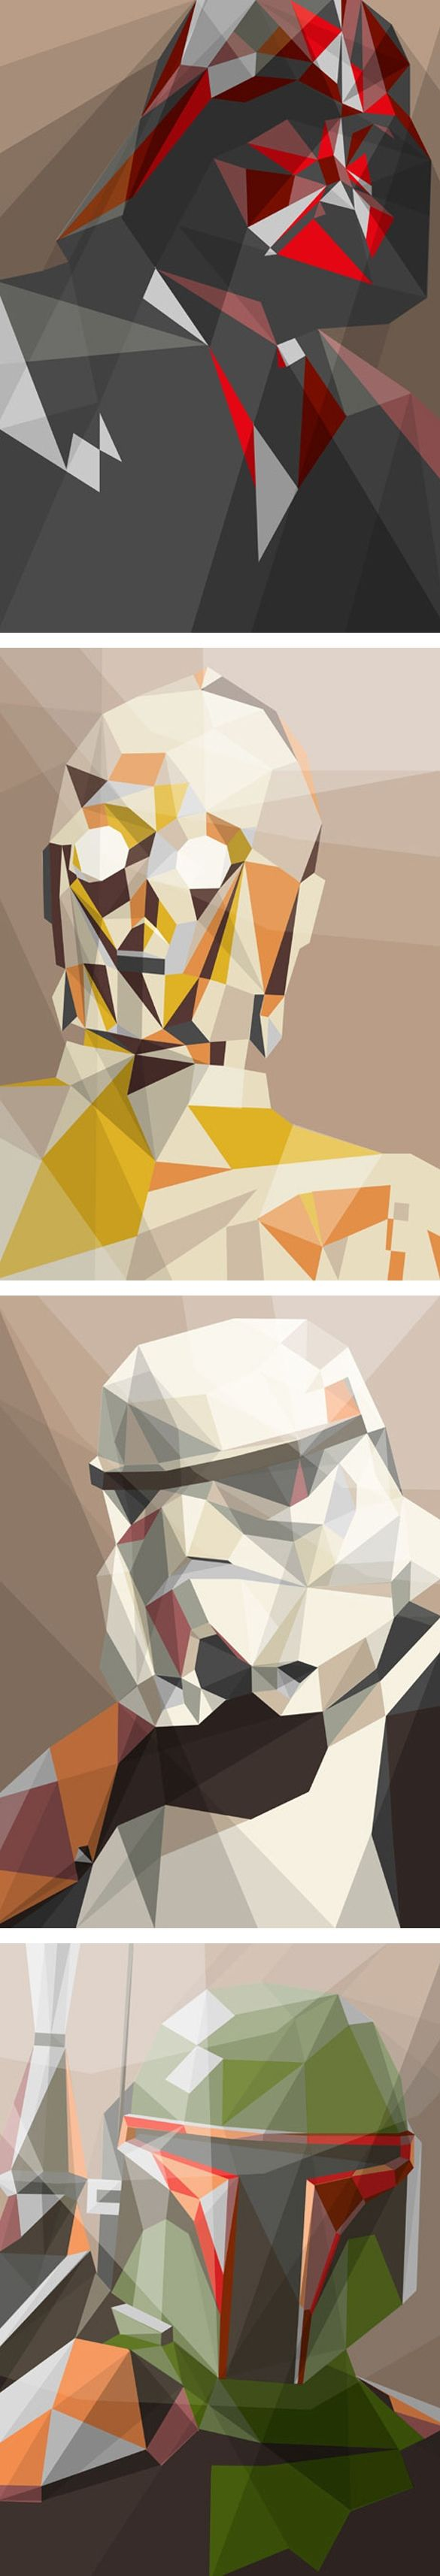 Star Wars art by Liam Brazier